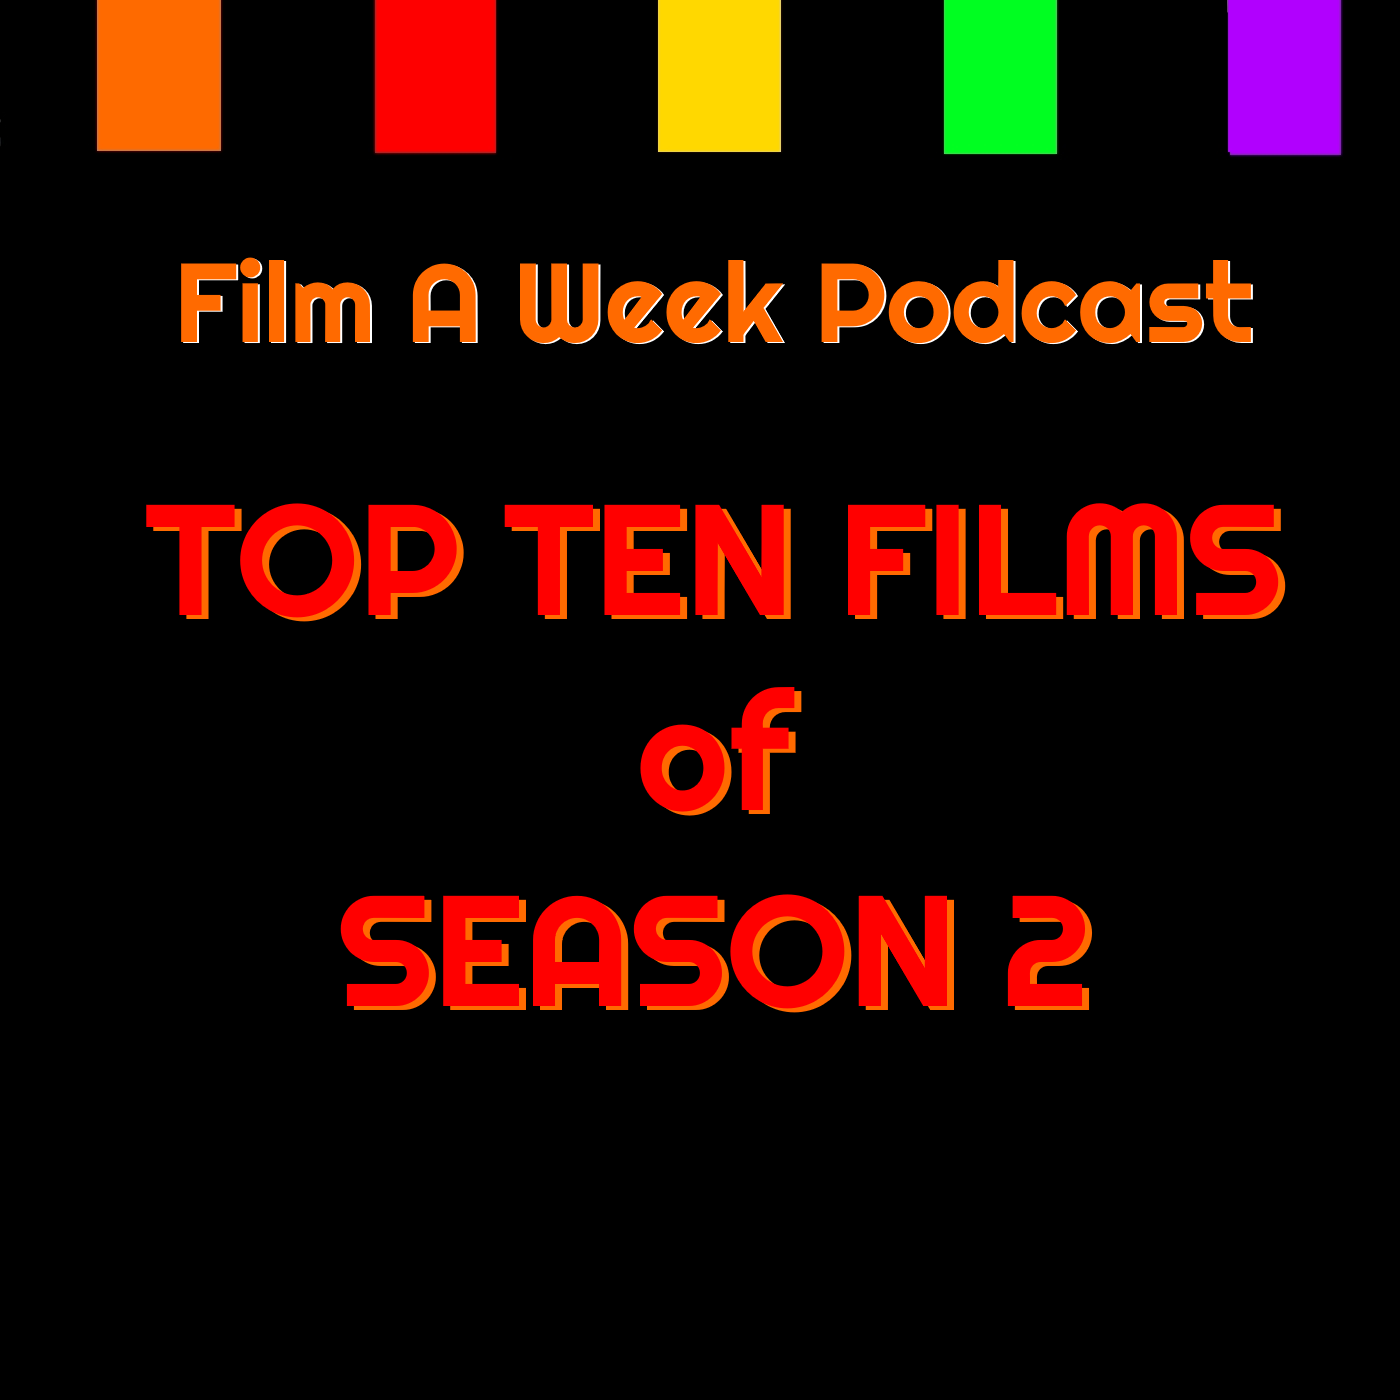 EP. 116: top ten films of season 2 special - Serg and Patrick run down their top ten films of Season 2.Which films do they consider the best of the season? What were the hosts favorite episodes? Will a Cannon film make an appearance? Why is Patrick Stewart the MVP of the year? Find the answers to all this and more in a two-hour end-of-the-year special!LISTEN ON: SOUNDCLOUDiTUNESSTITCHER RADIO